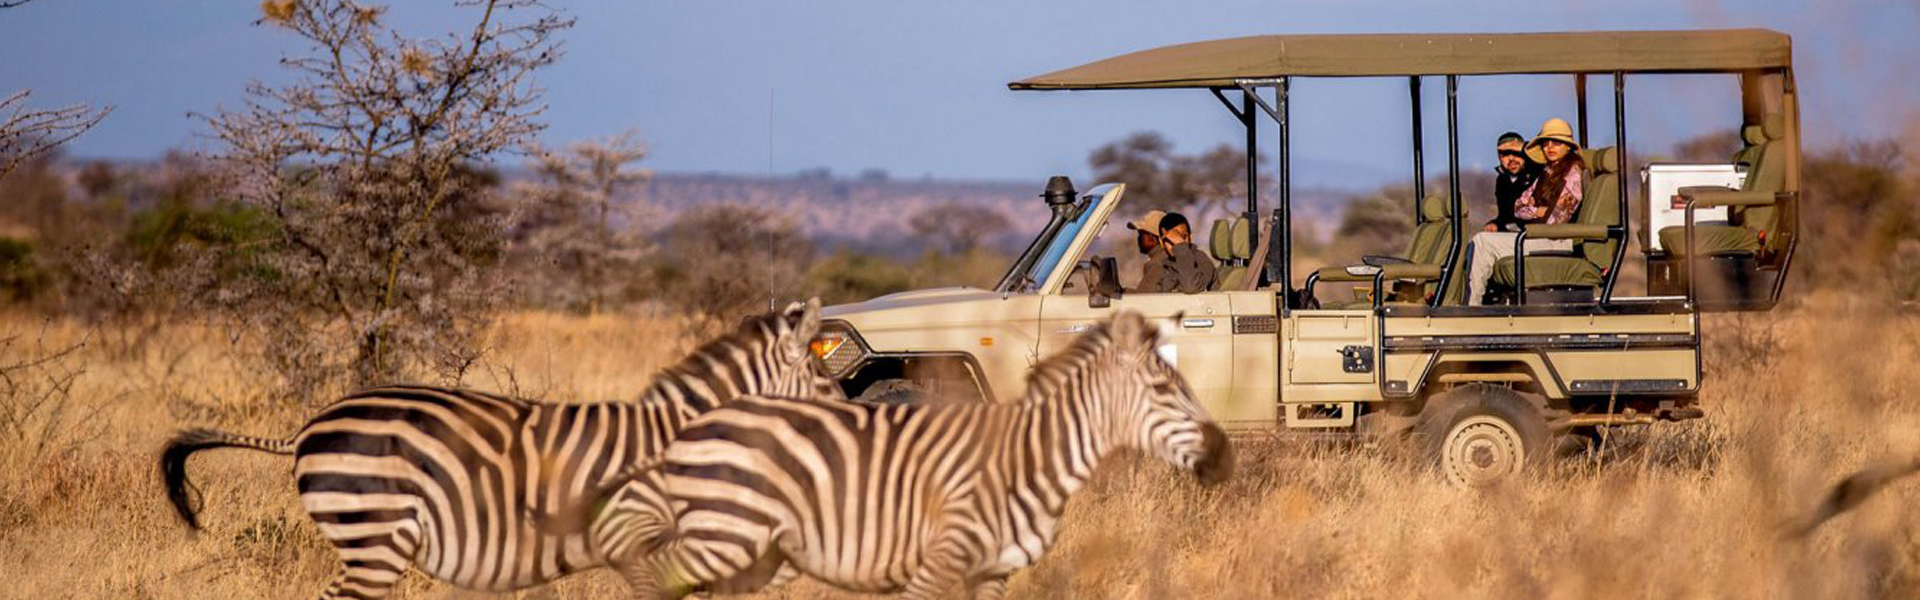 4 Days / 3 Night Selous Safari Trip